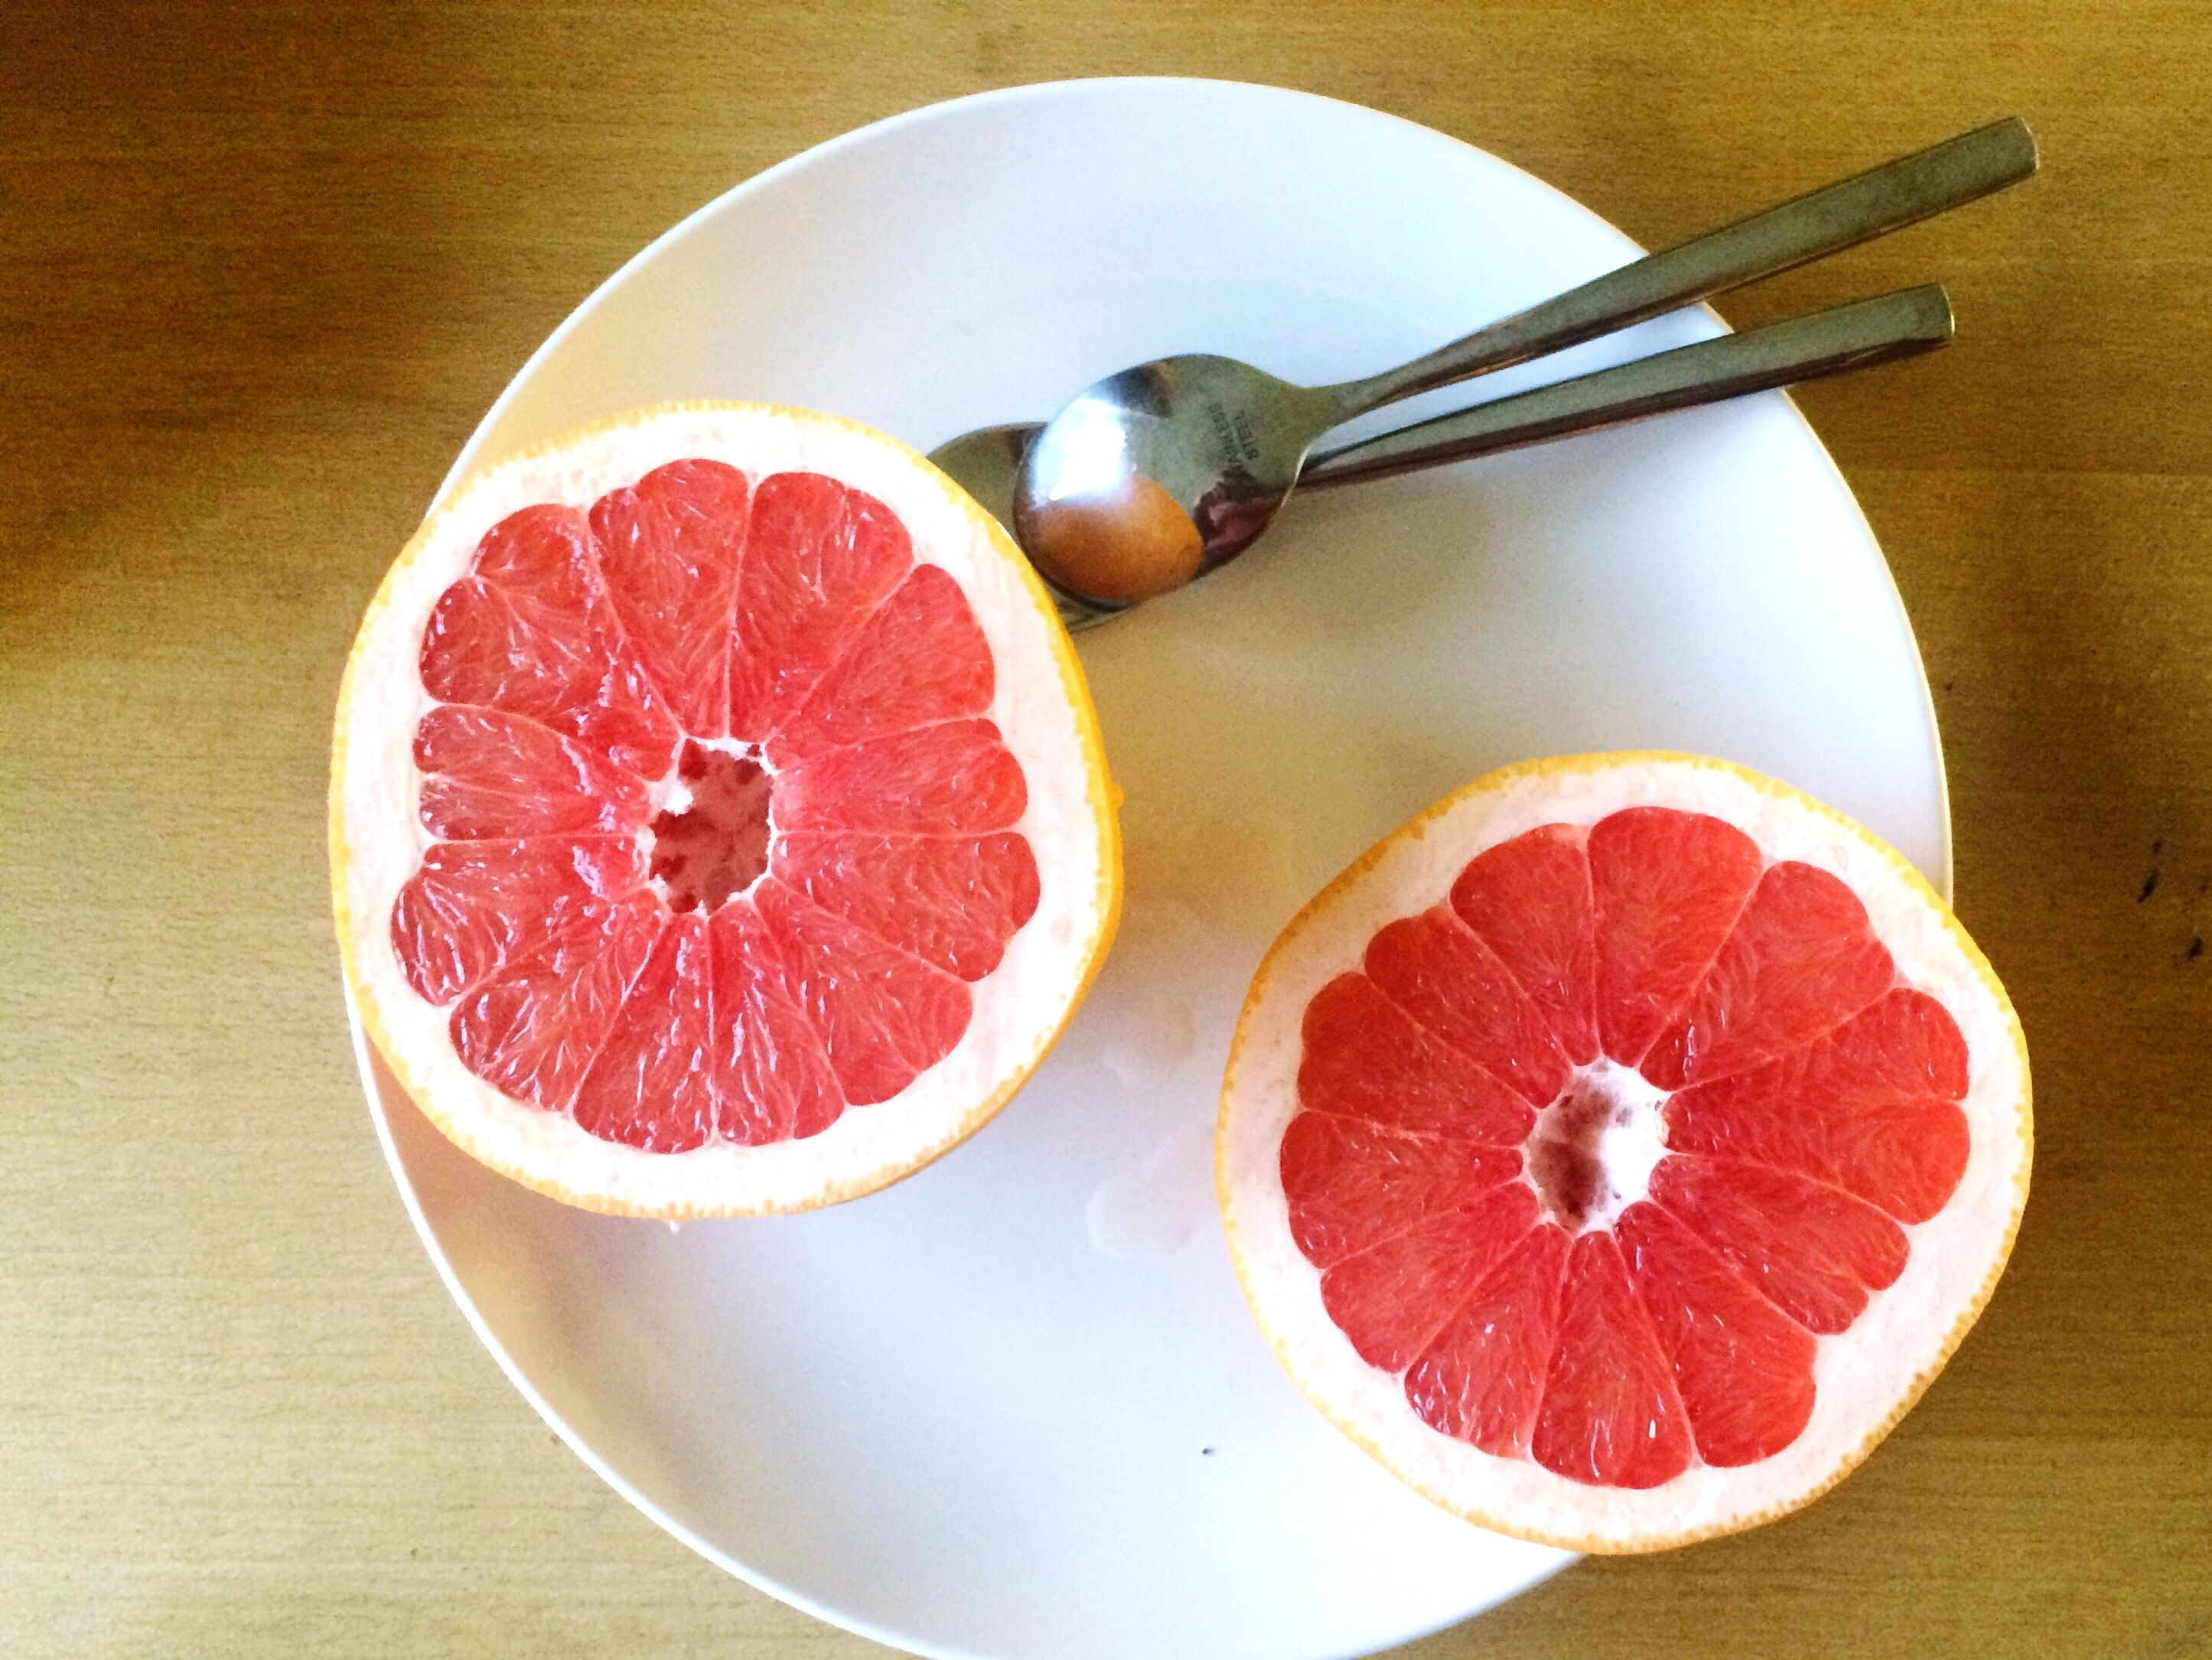 How to add grapefruit to your diet for health benefits